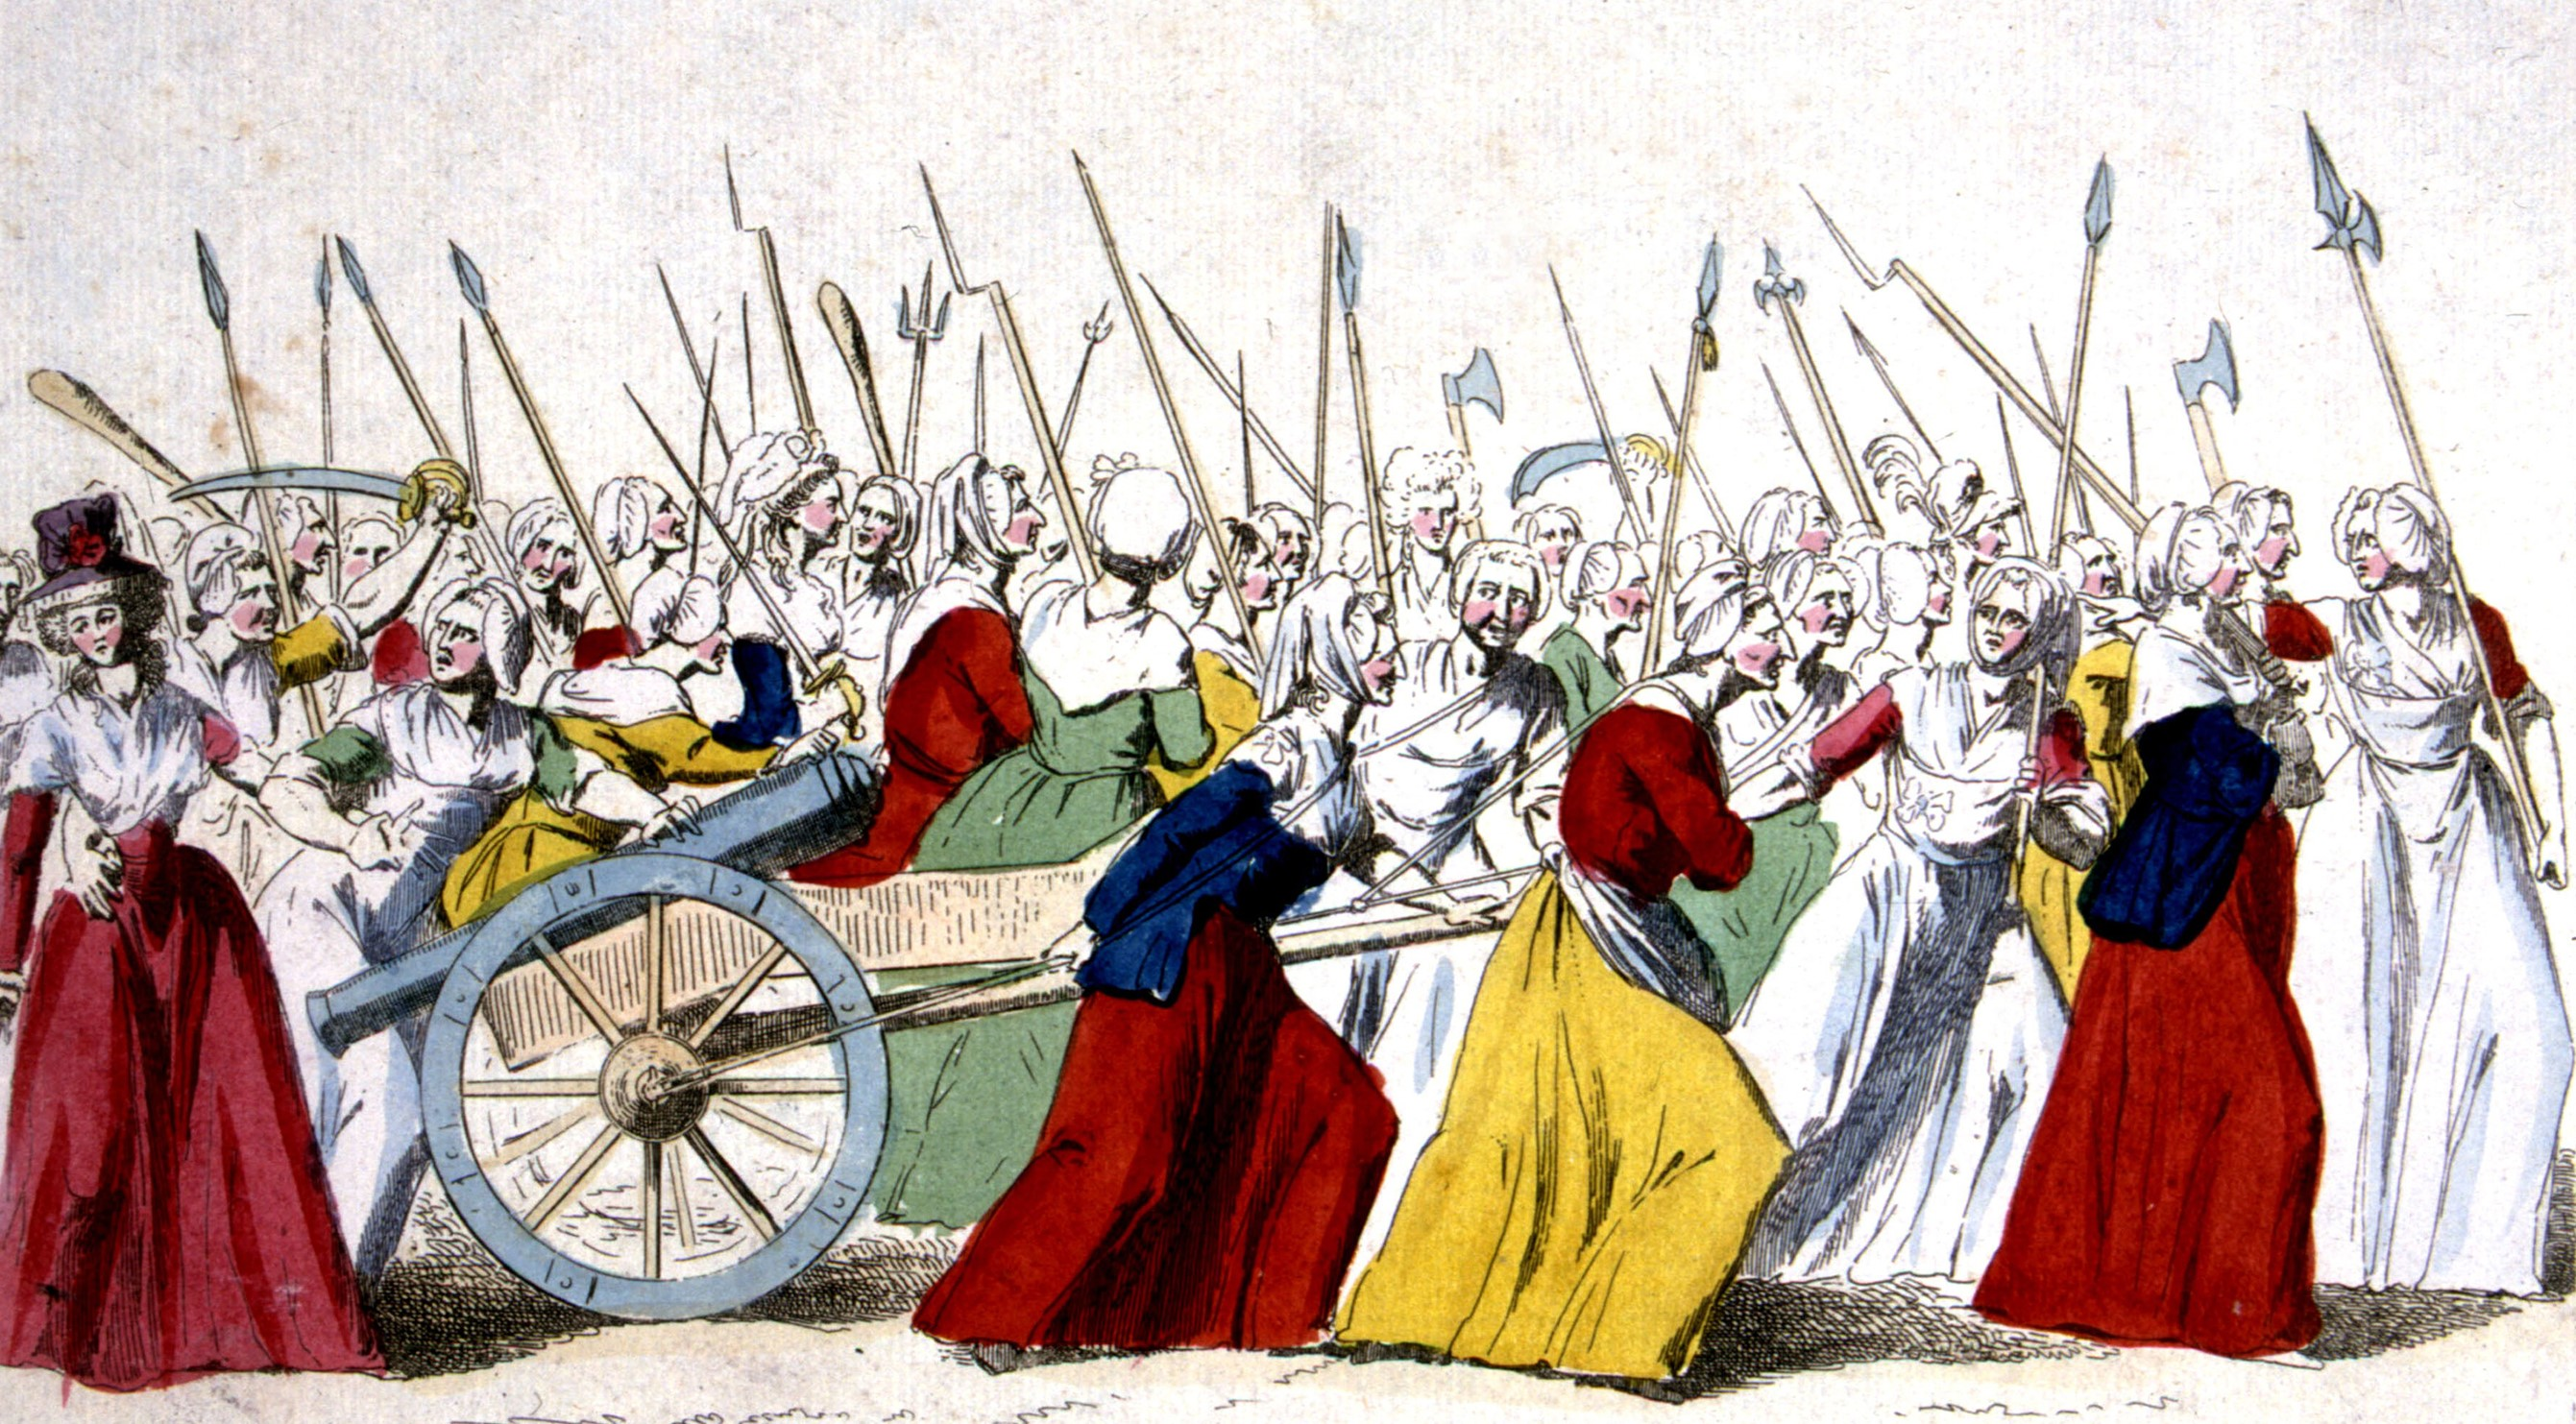 March of insurgent women in Versailles, October 5, 1789, France, French Revolution of 1789Paris, Bibliotheque Nationale. (Photo by Photo12/UIG/Getty Images)